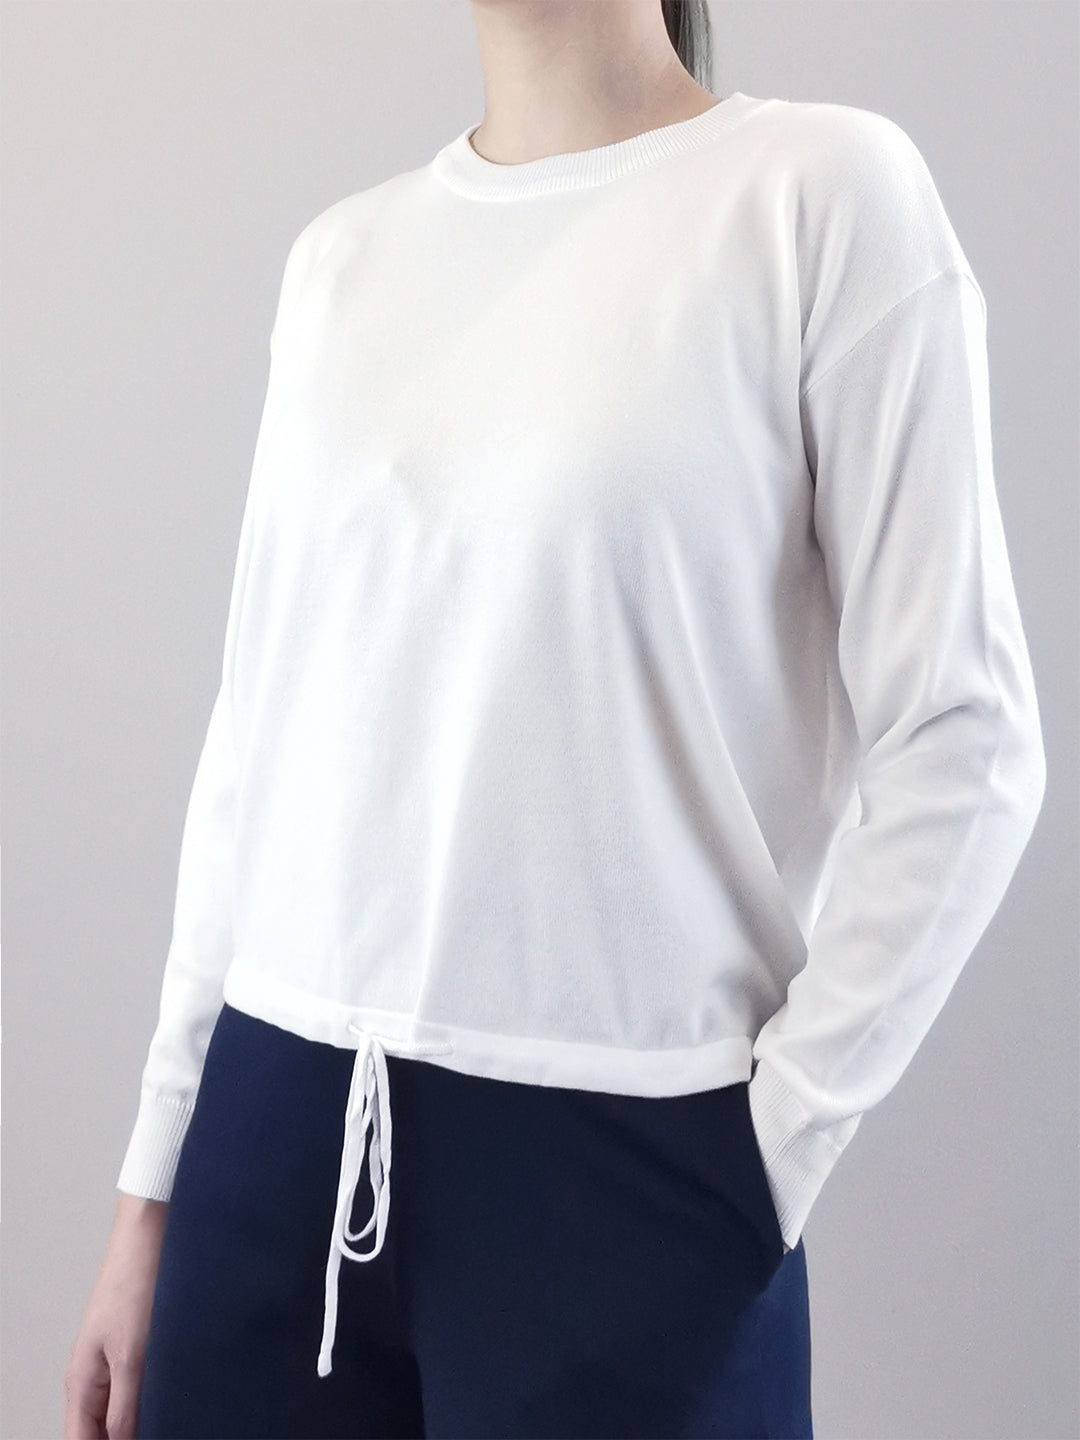 Long Sleeve Knit Top- White